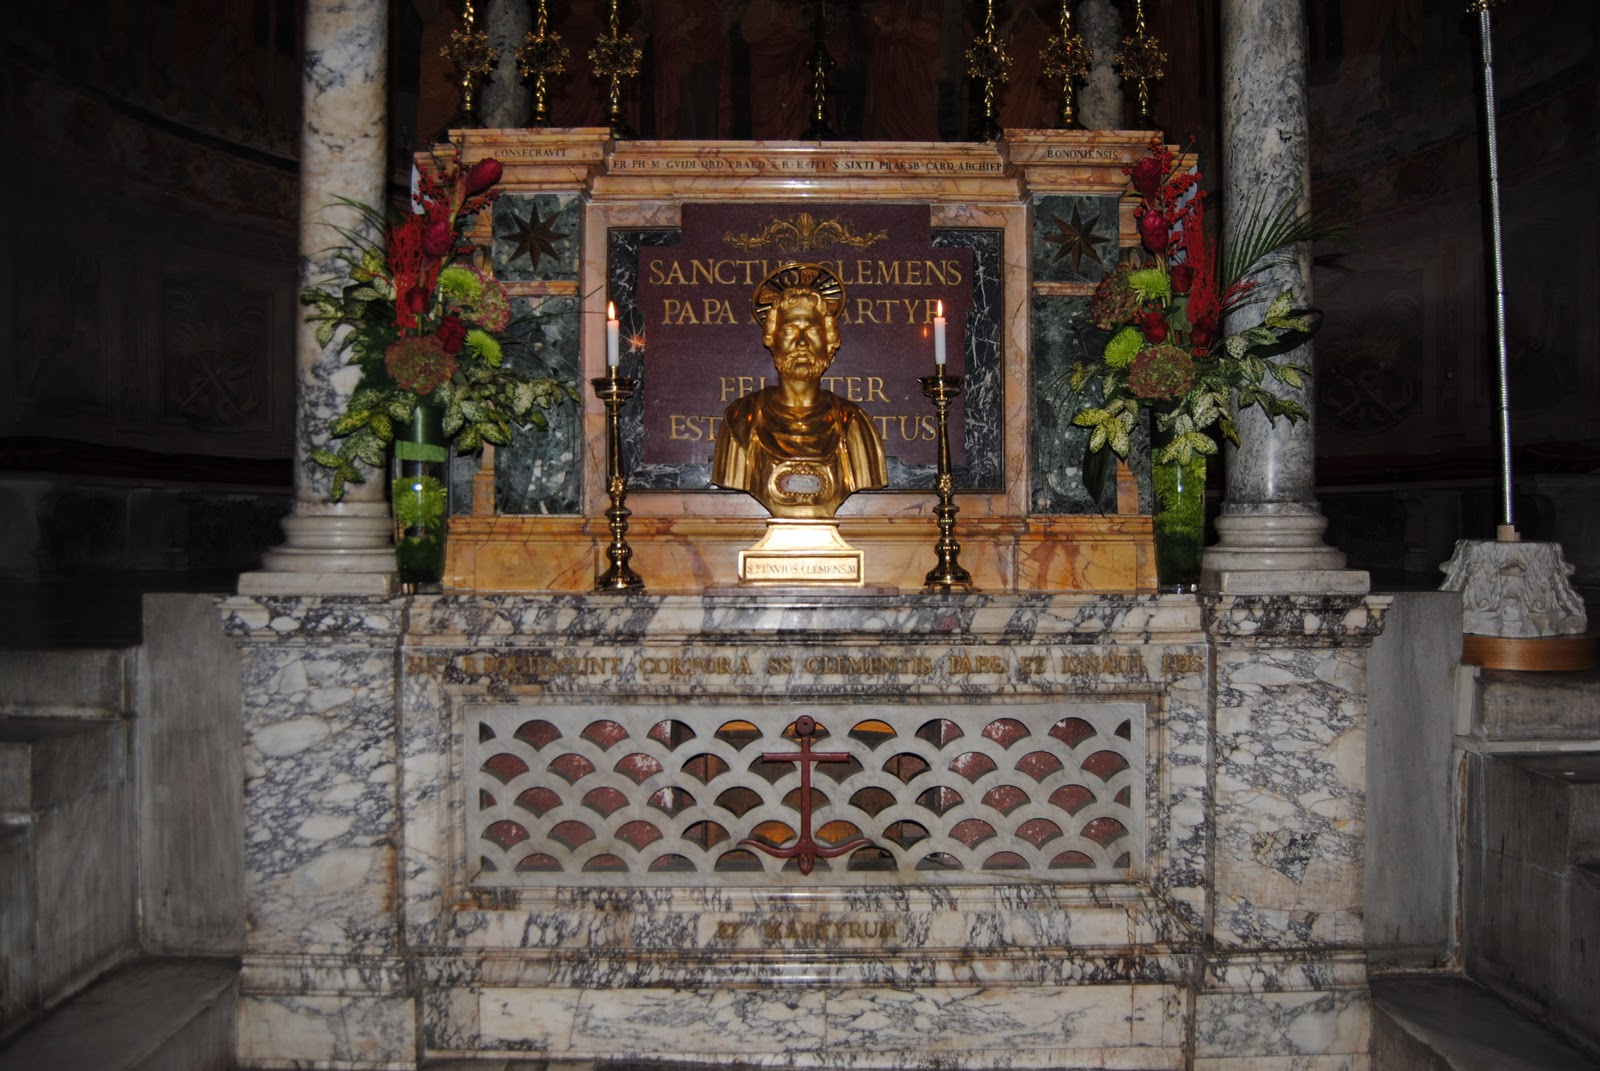 pope st. clement tomb i